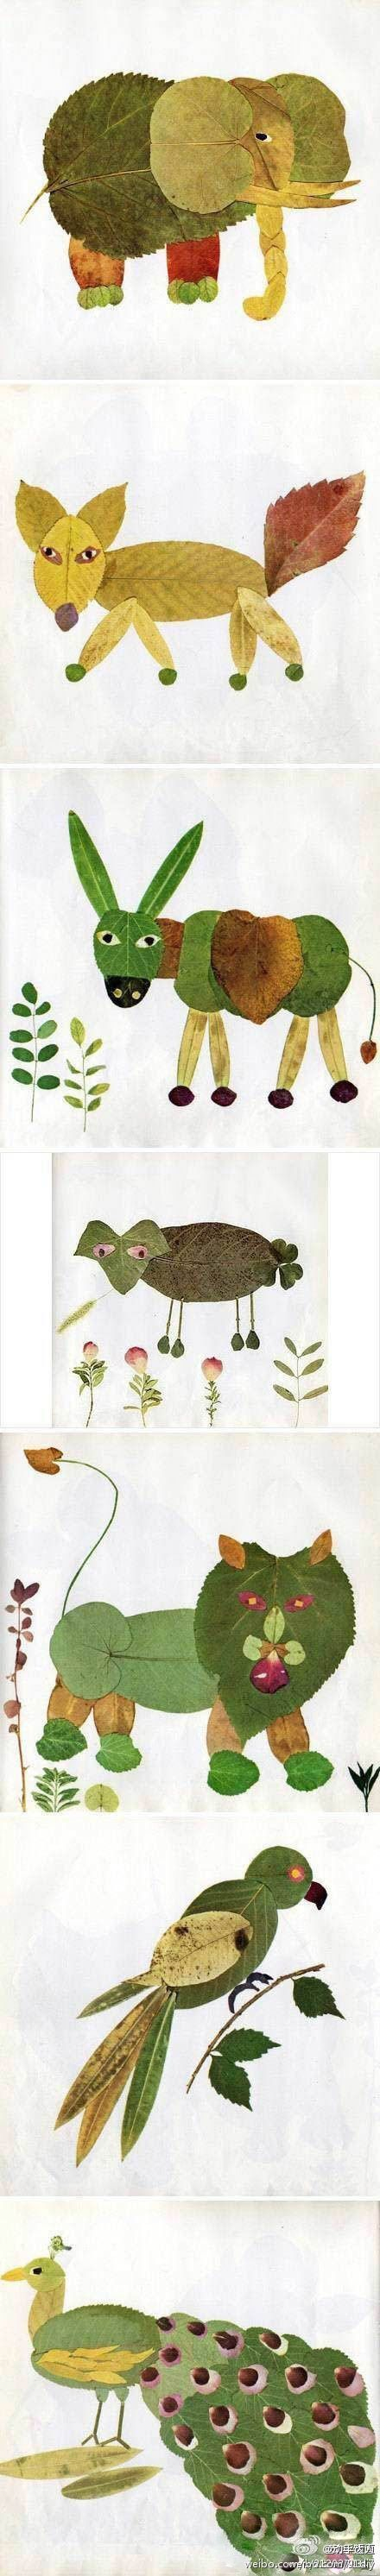 Animals made out of leaves - love this